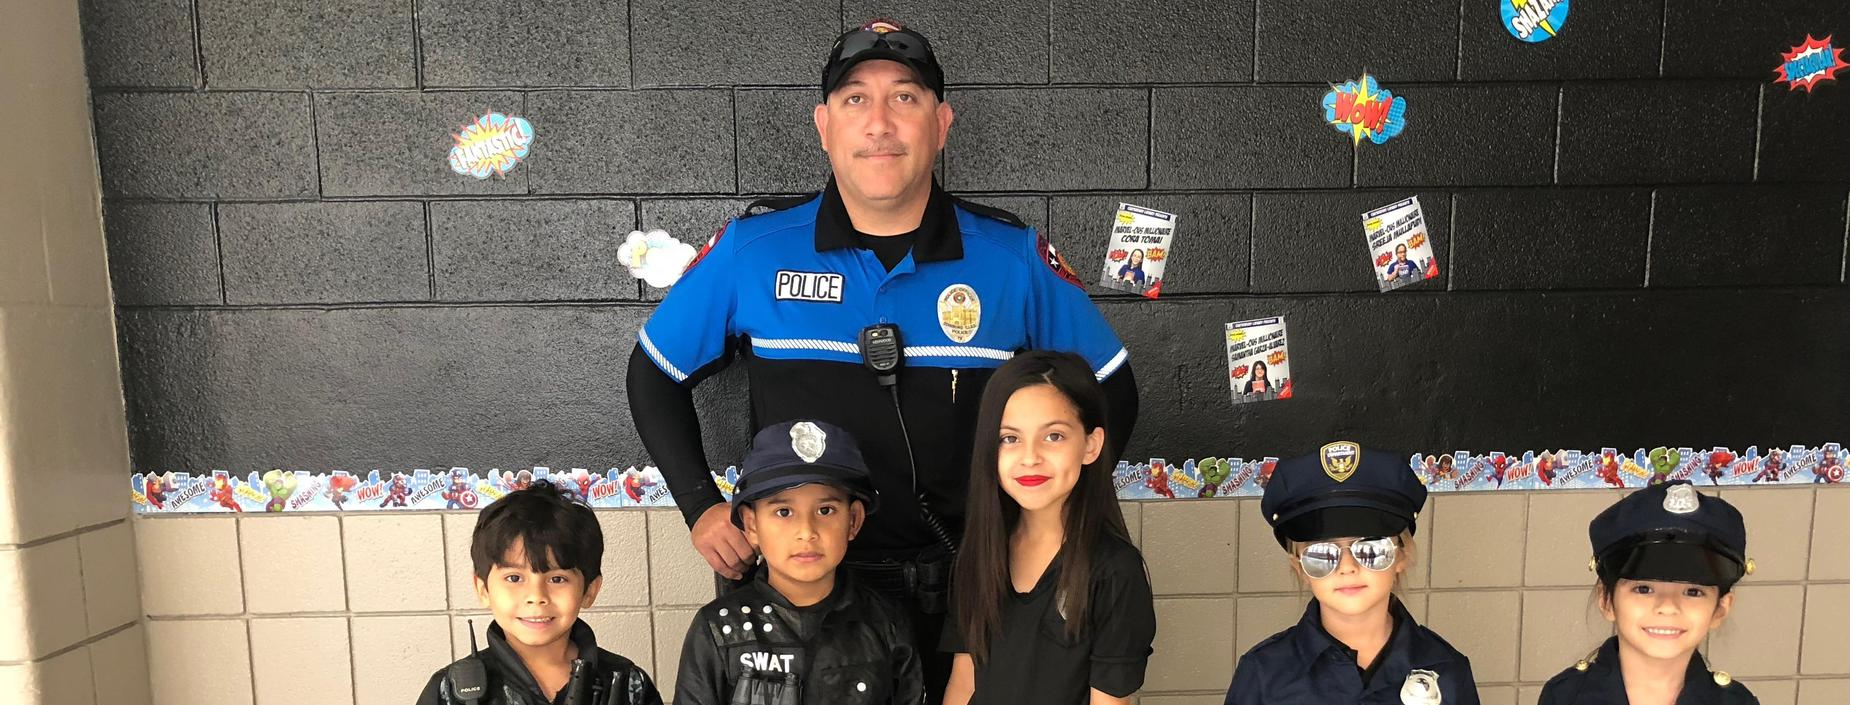 Halloween at Canterbury-students and police officer